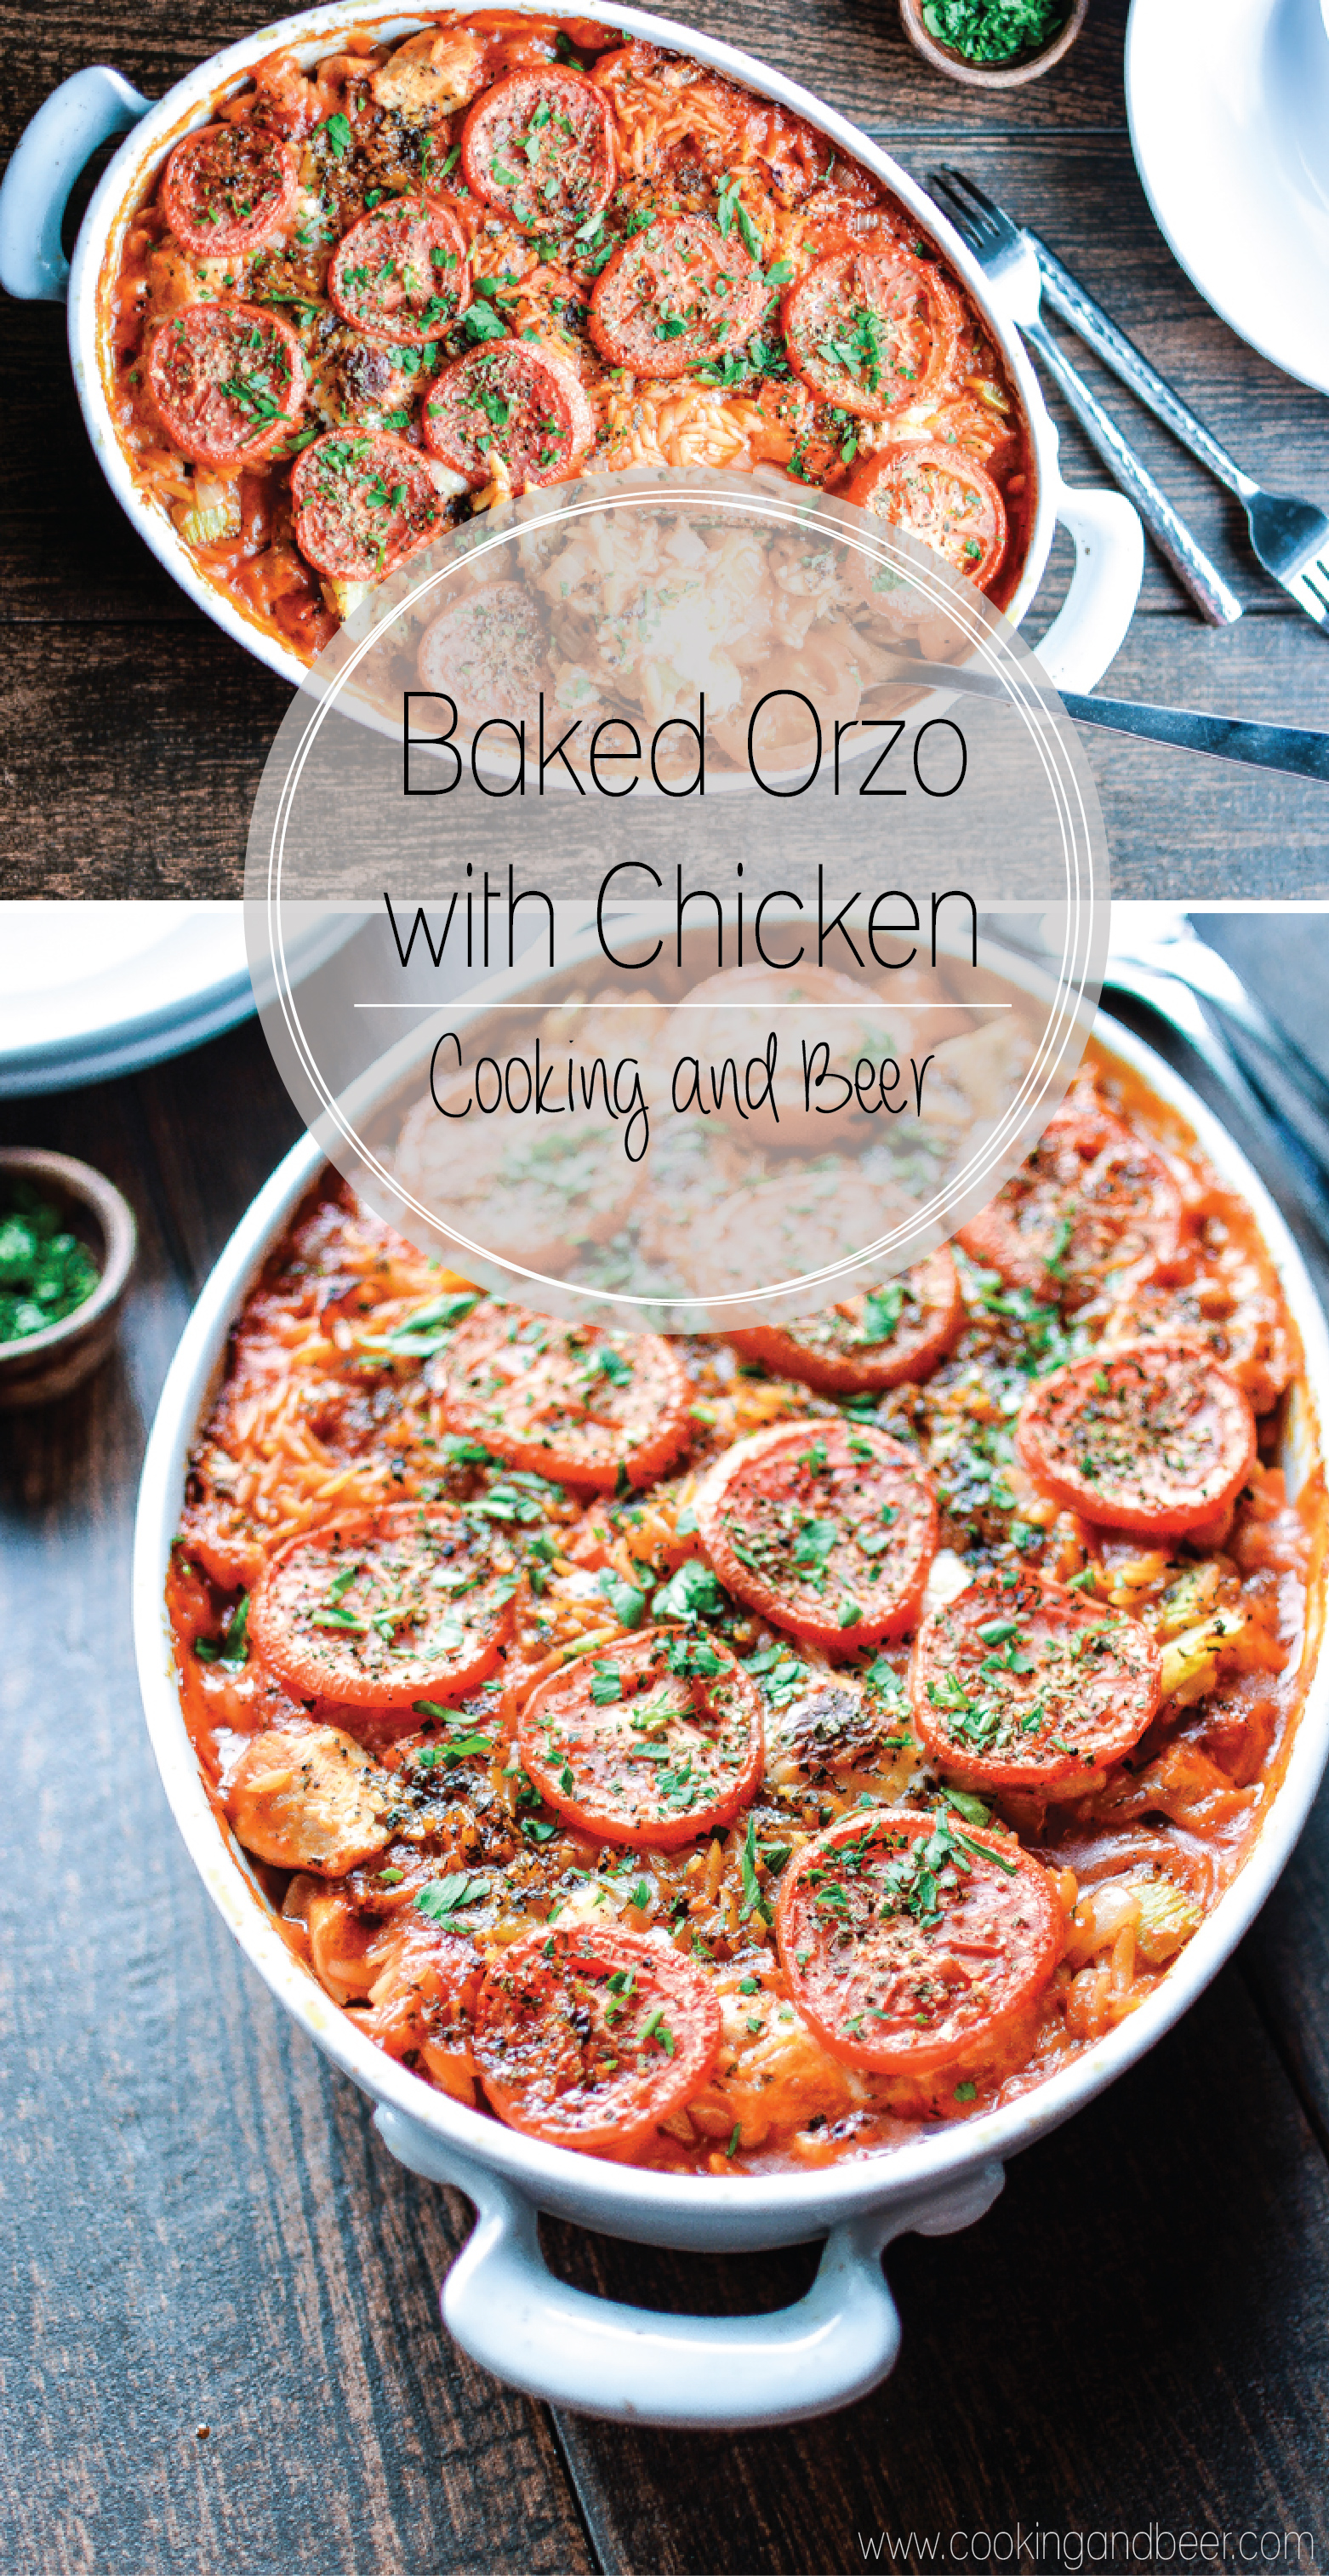 Baked orzo with chicken baked orzo with chicken a comforting and simple weeknight dinner recipe that the whole family forumfinder Image collections